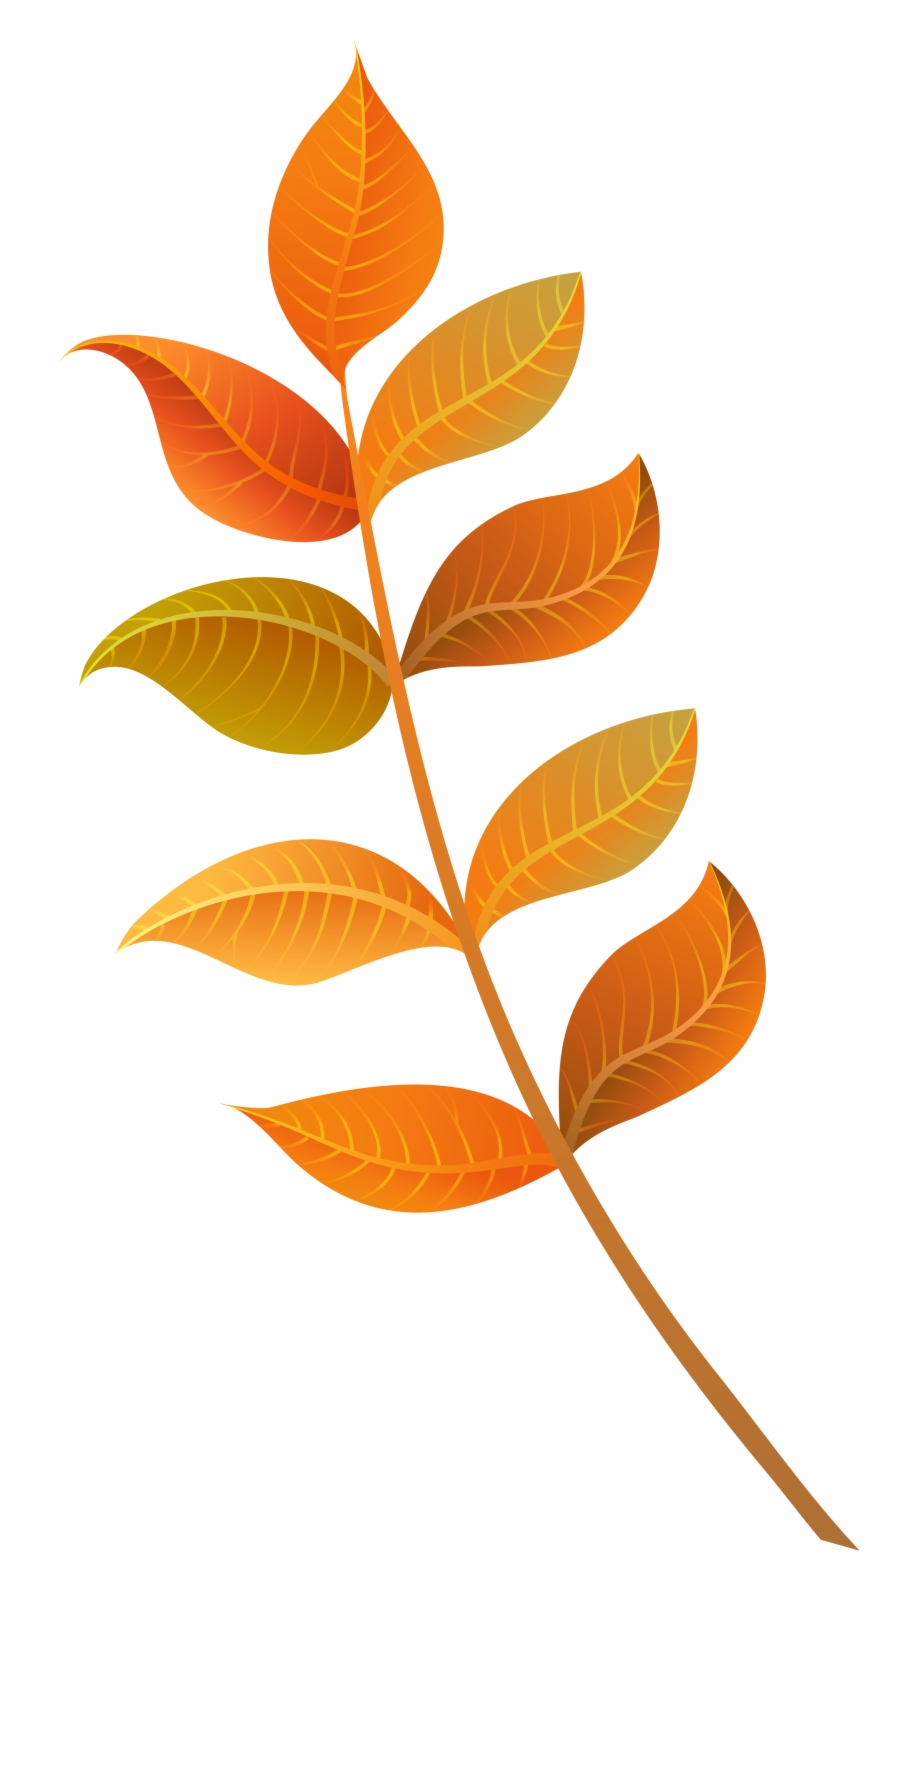 Fall Leaves Png Image.